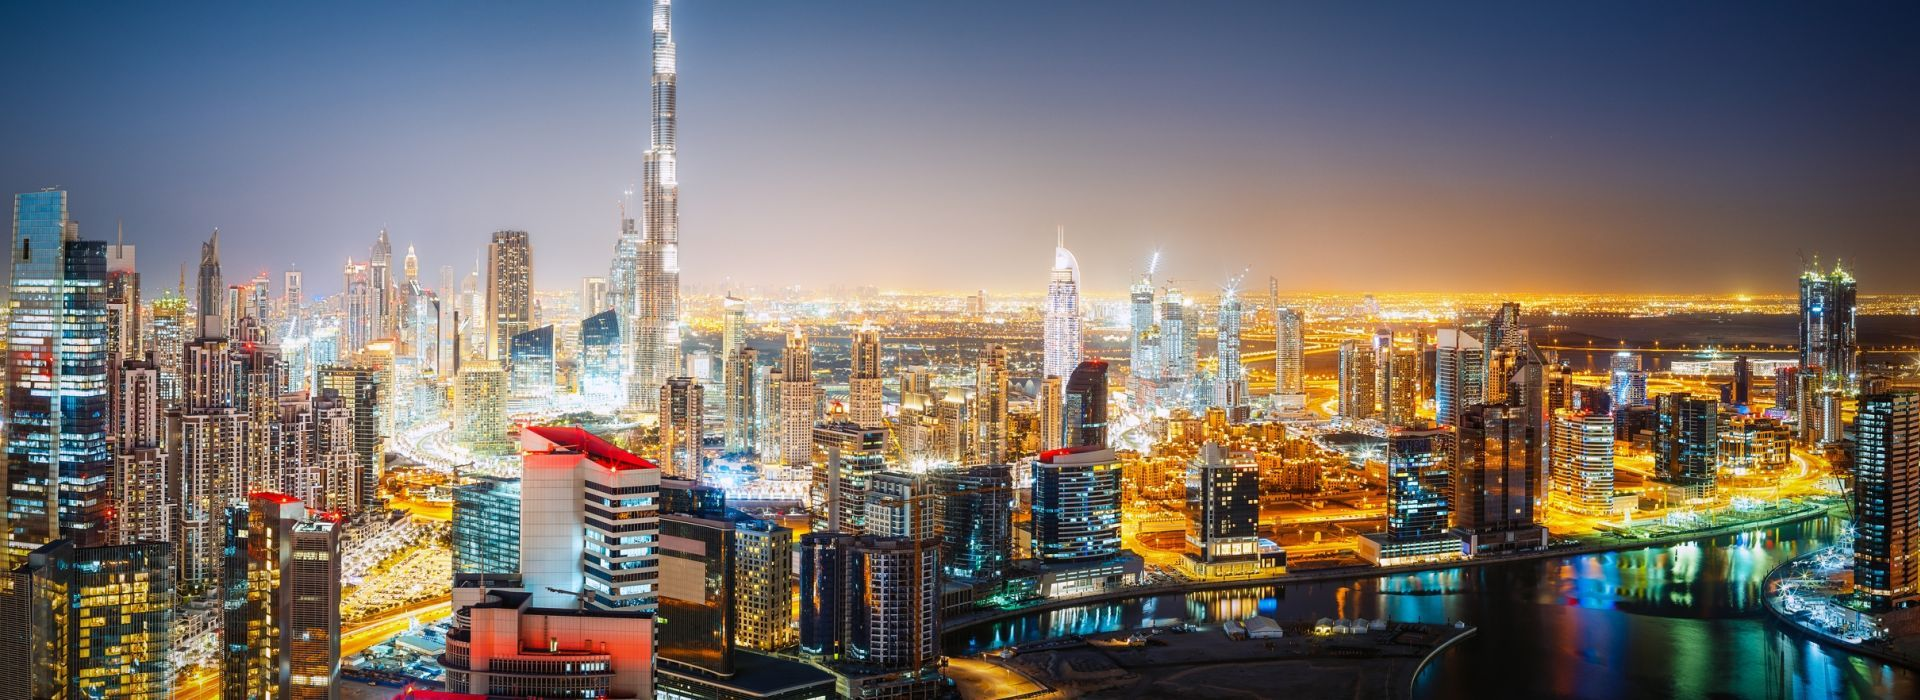 Photography tours in UAE